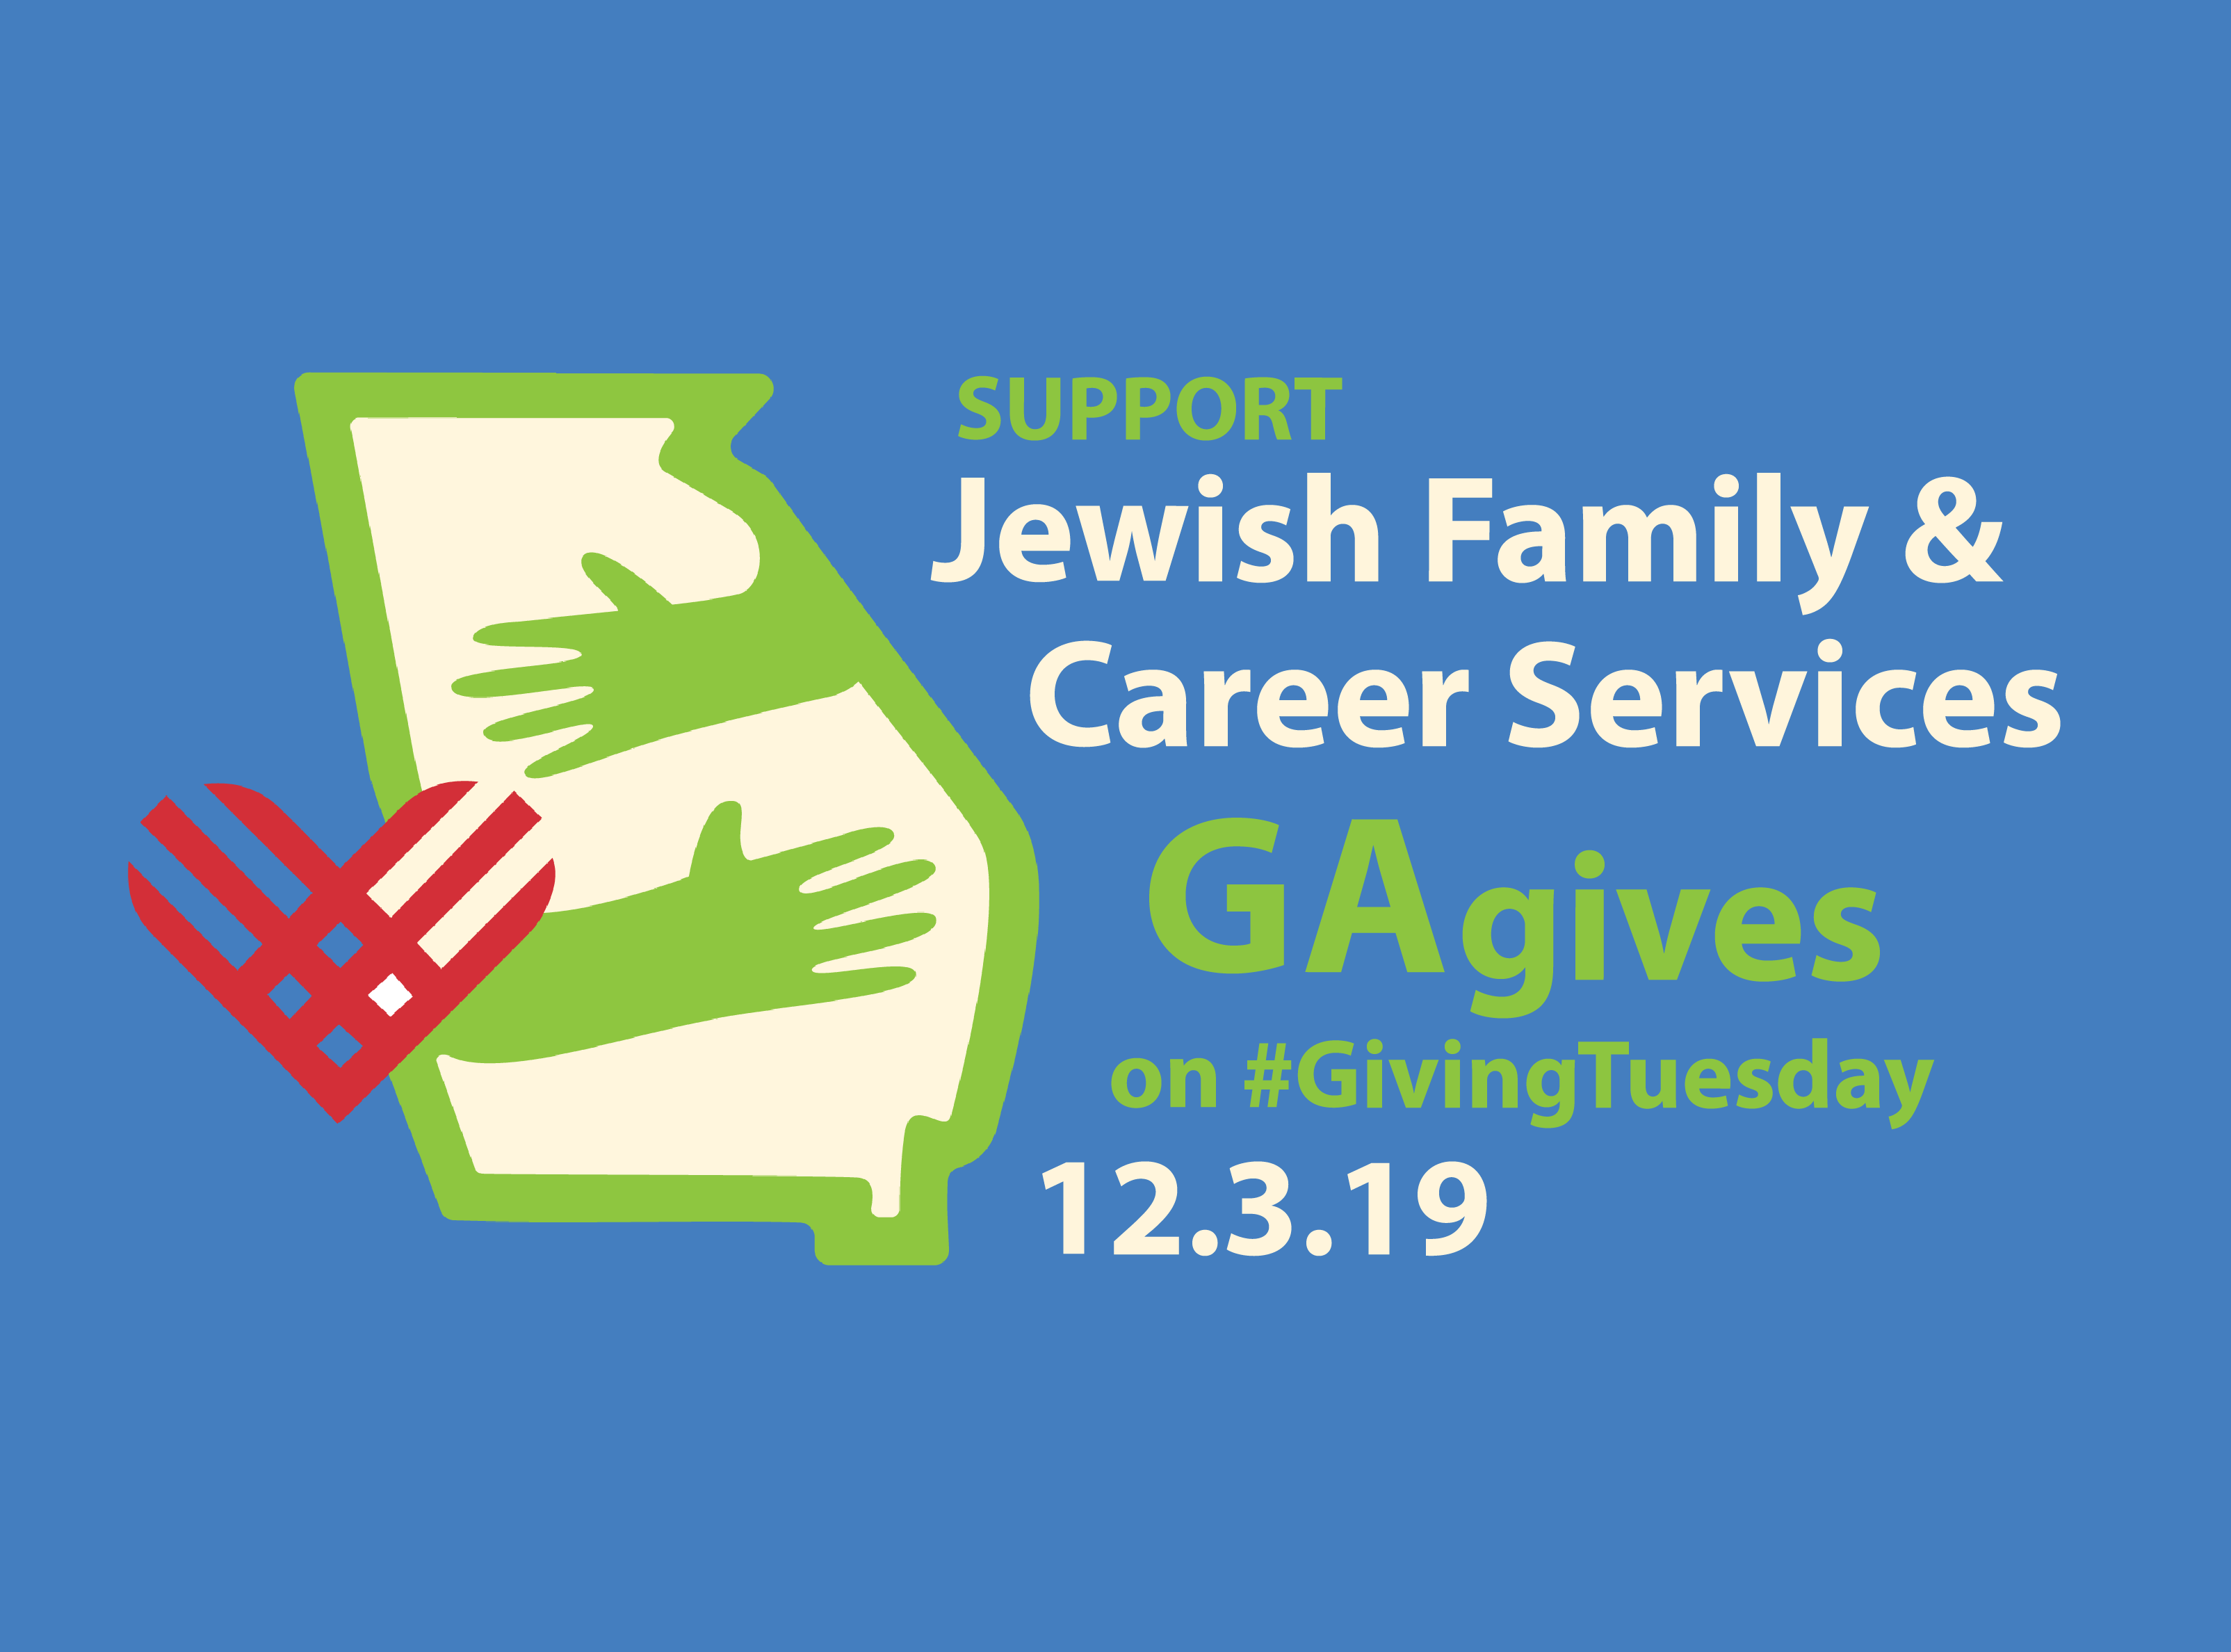 Giving Tuesday is Dec 3rd